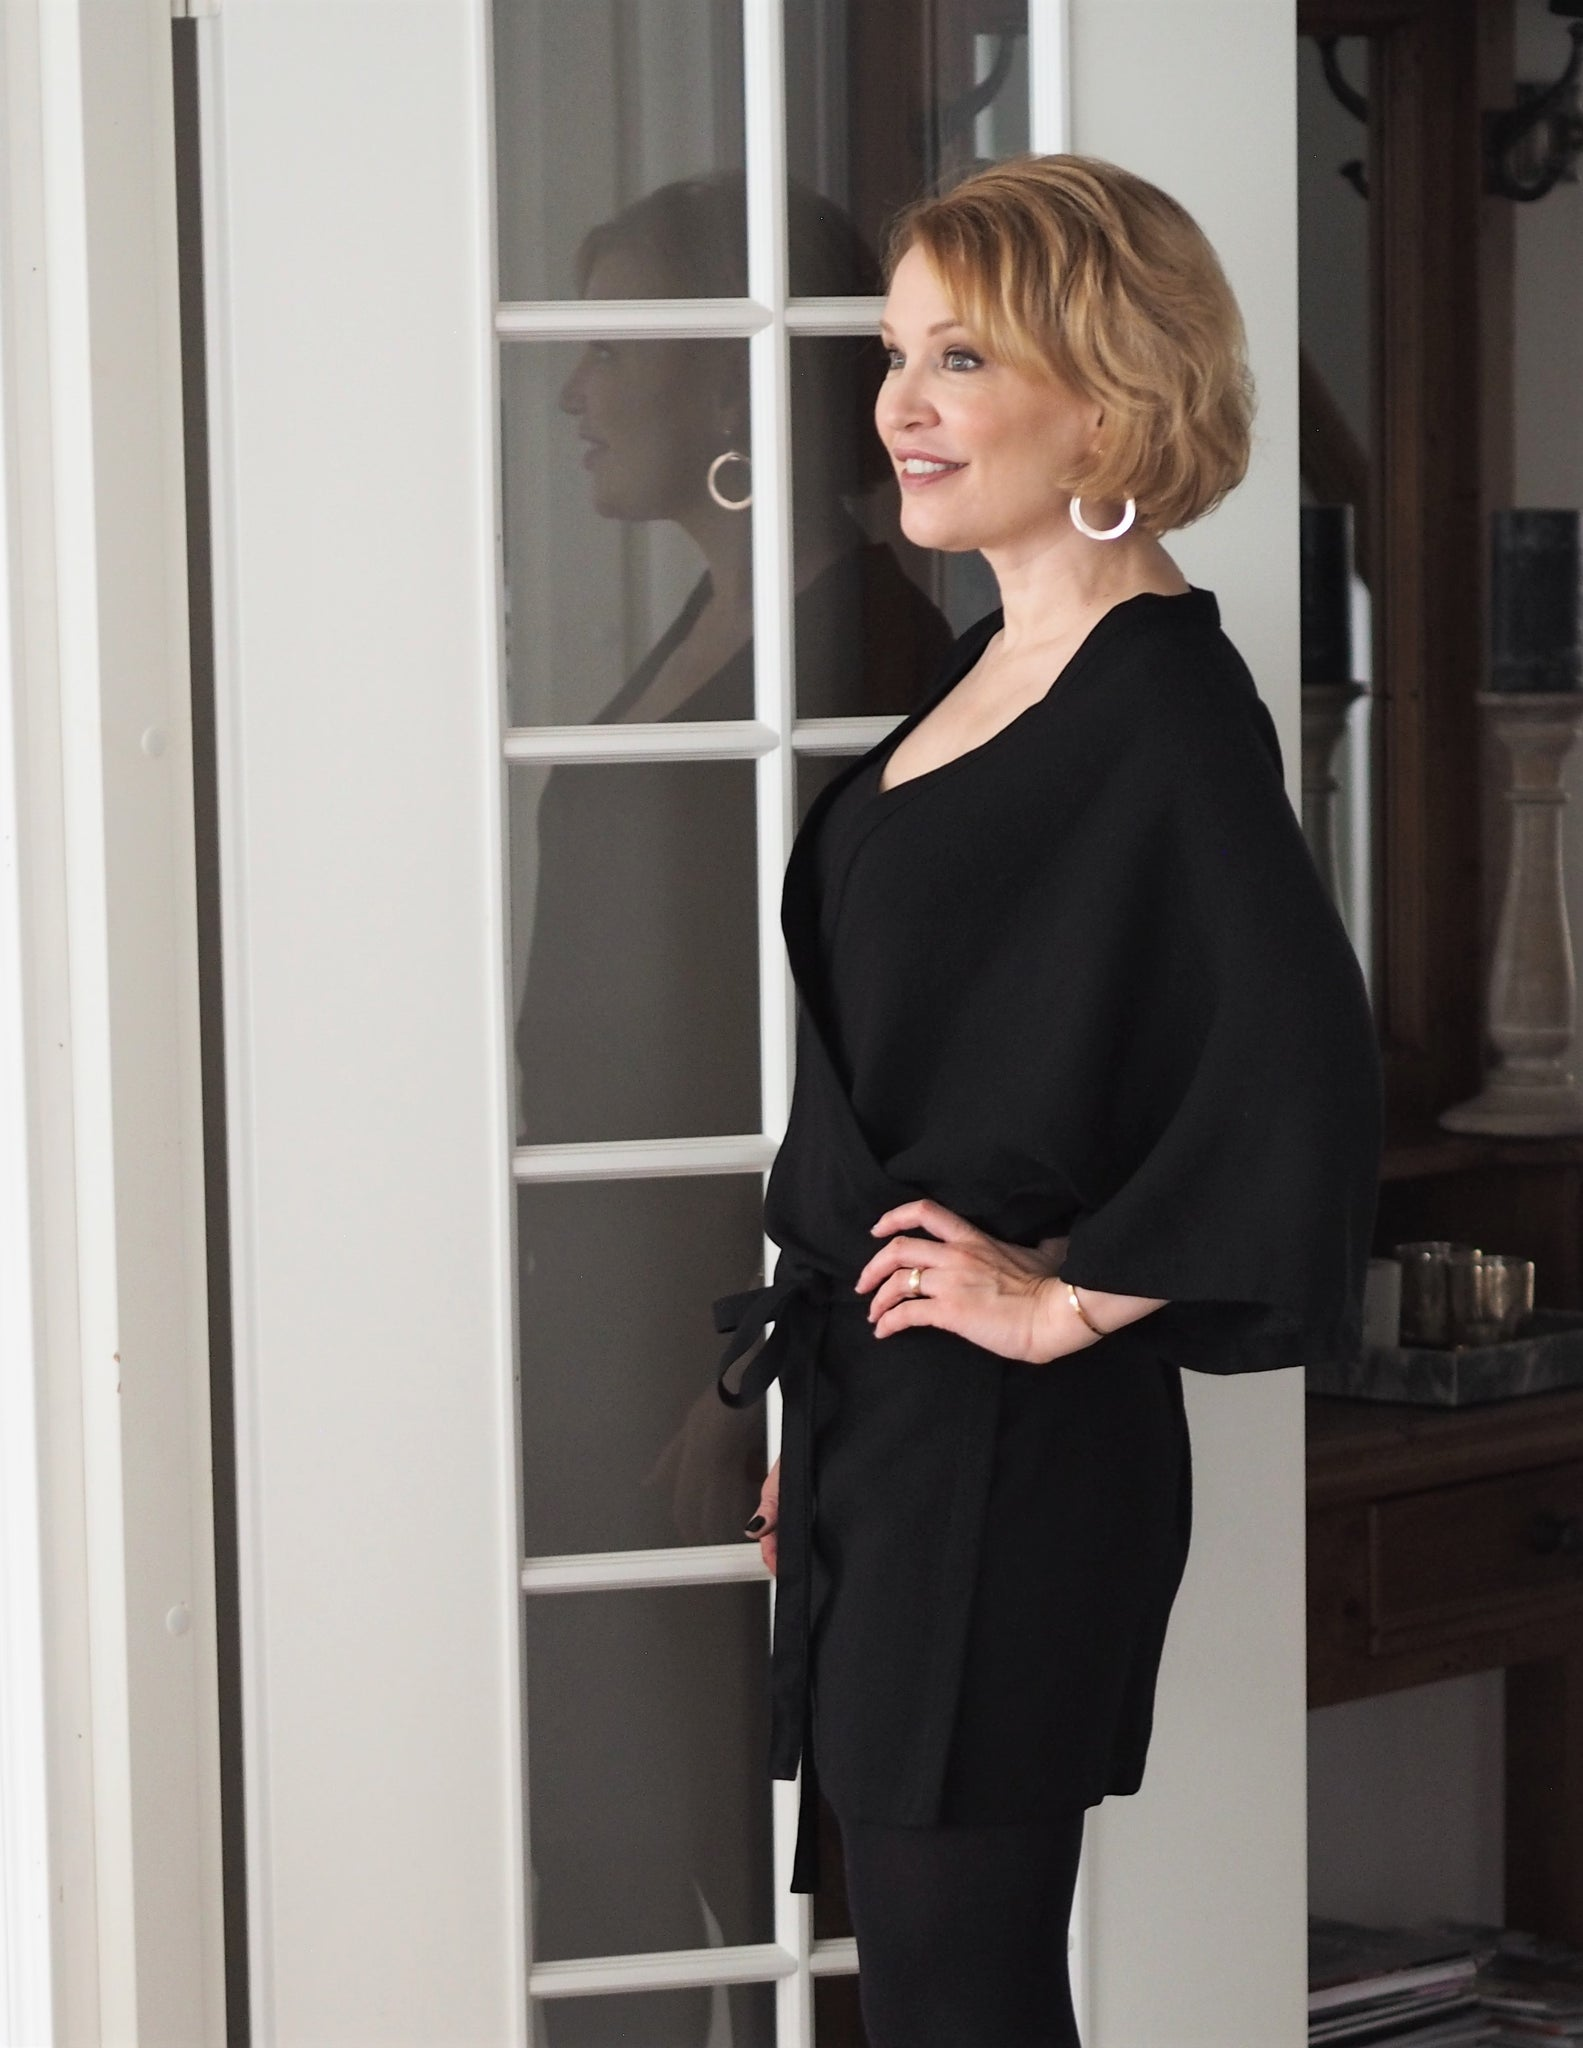 Wrap dress/kimono, black, wool crepe